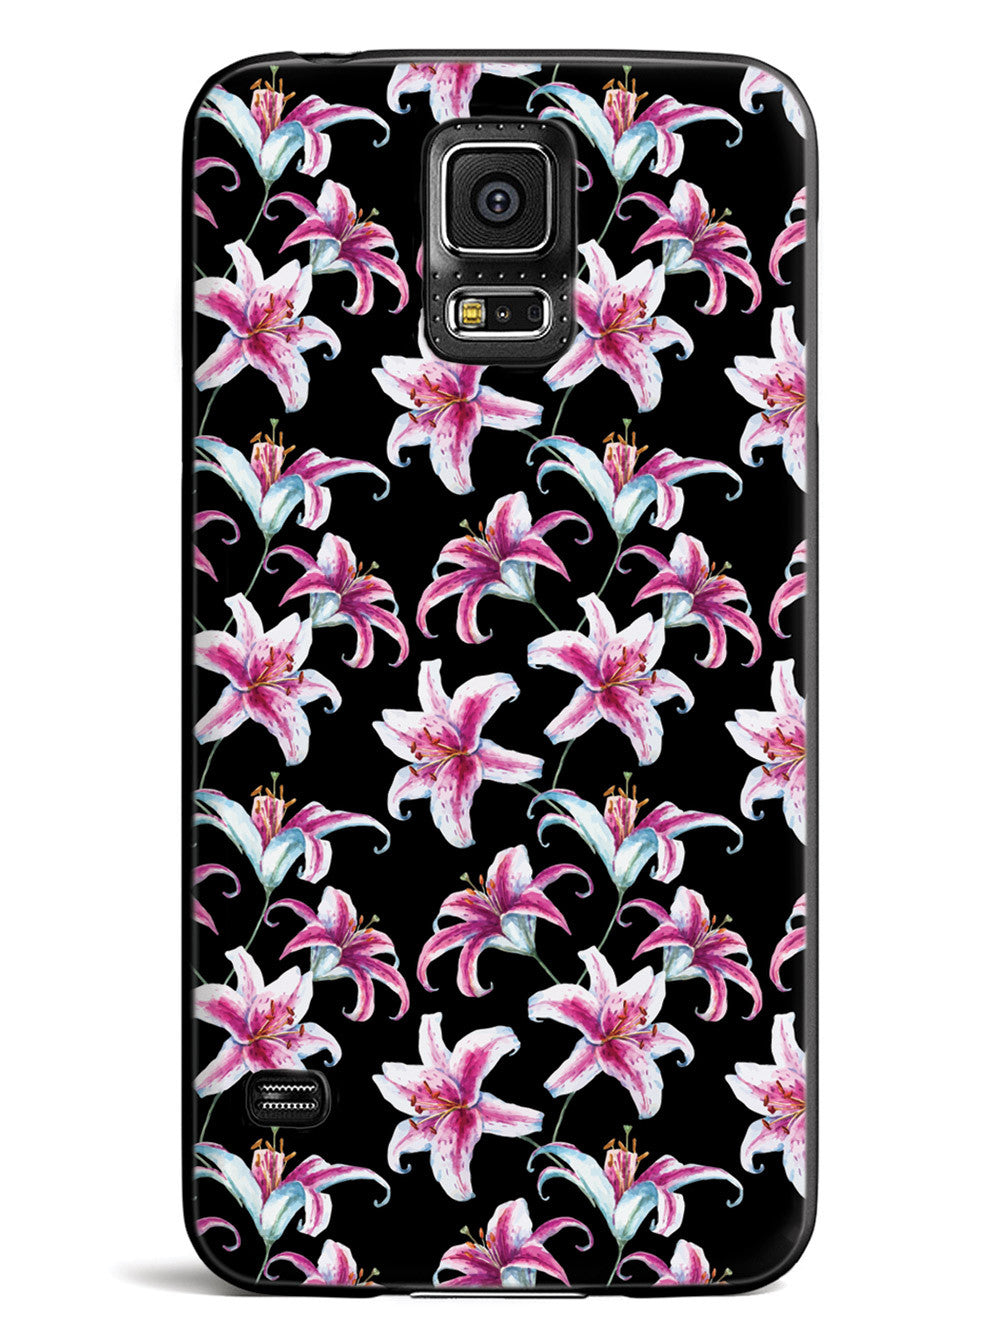 Watercolor Lilies - Black Case